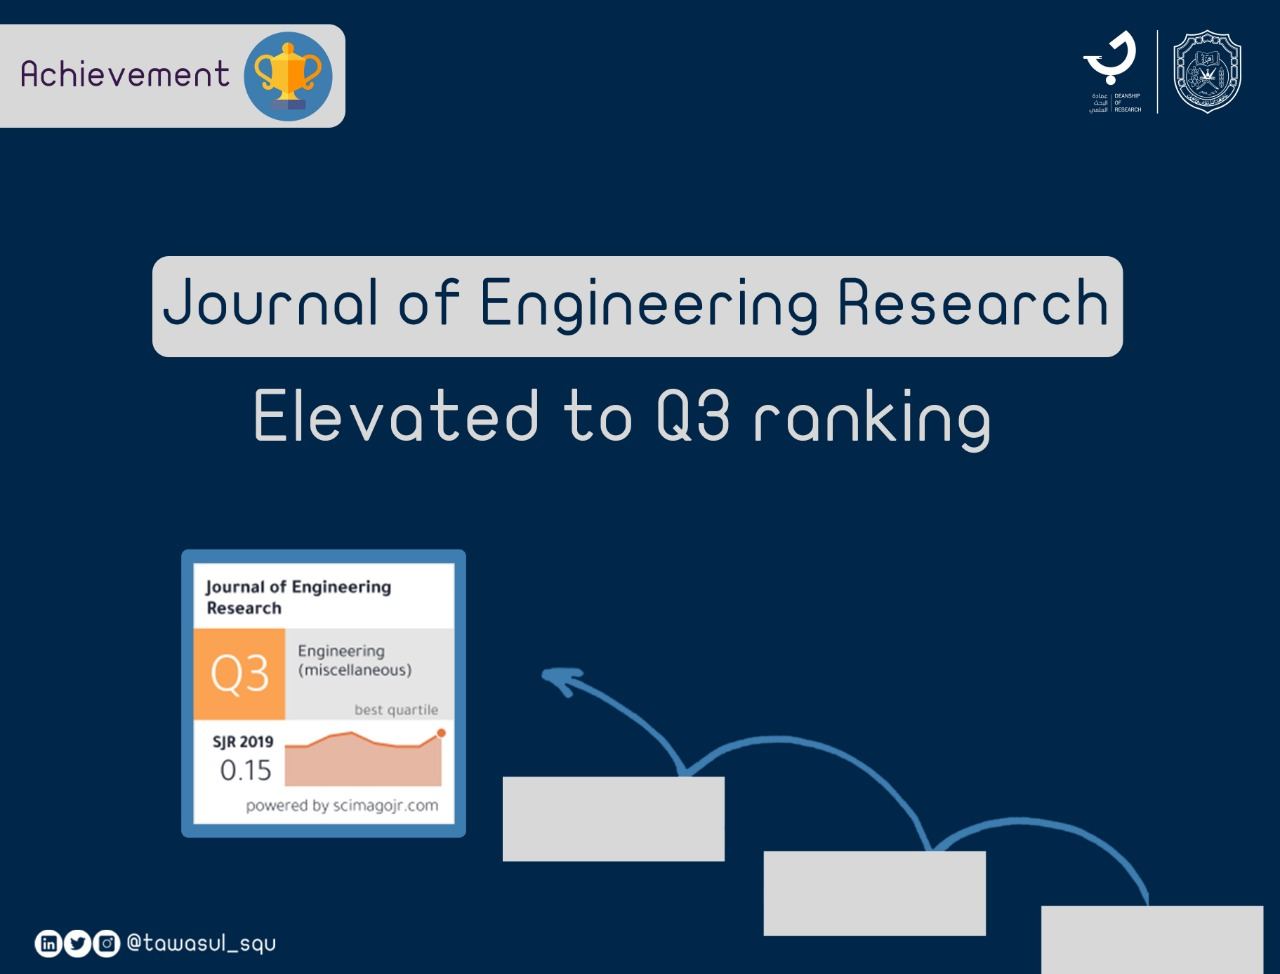 Journal of Engineering Research elevated to Q3 ranking